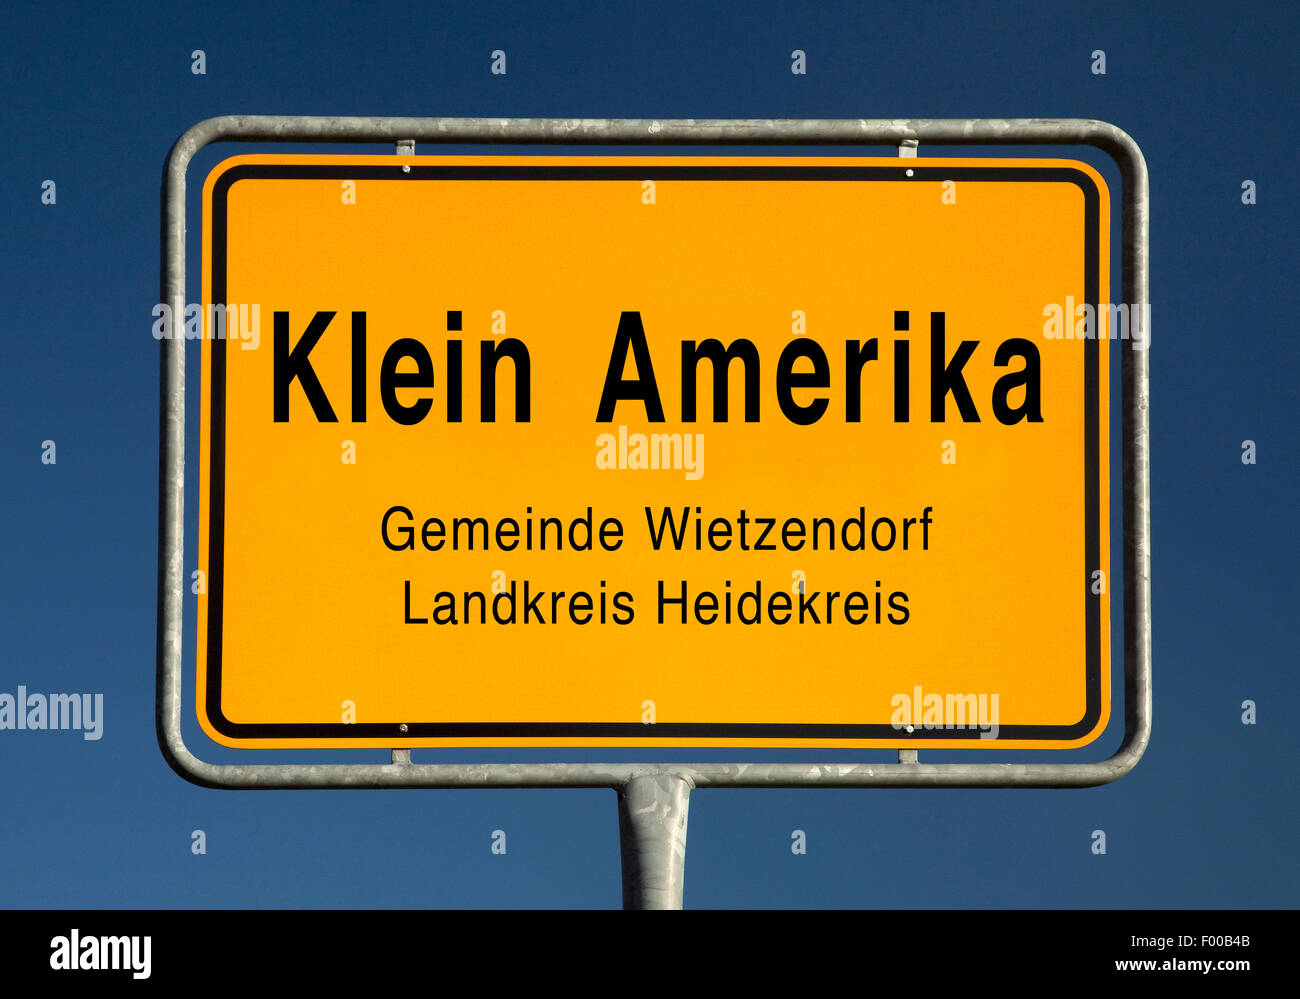 Klein Amerika place name sign, Germany, Lower Saxony, Landkreis Heidekreis, Wietzendorf - Stock Image